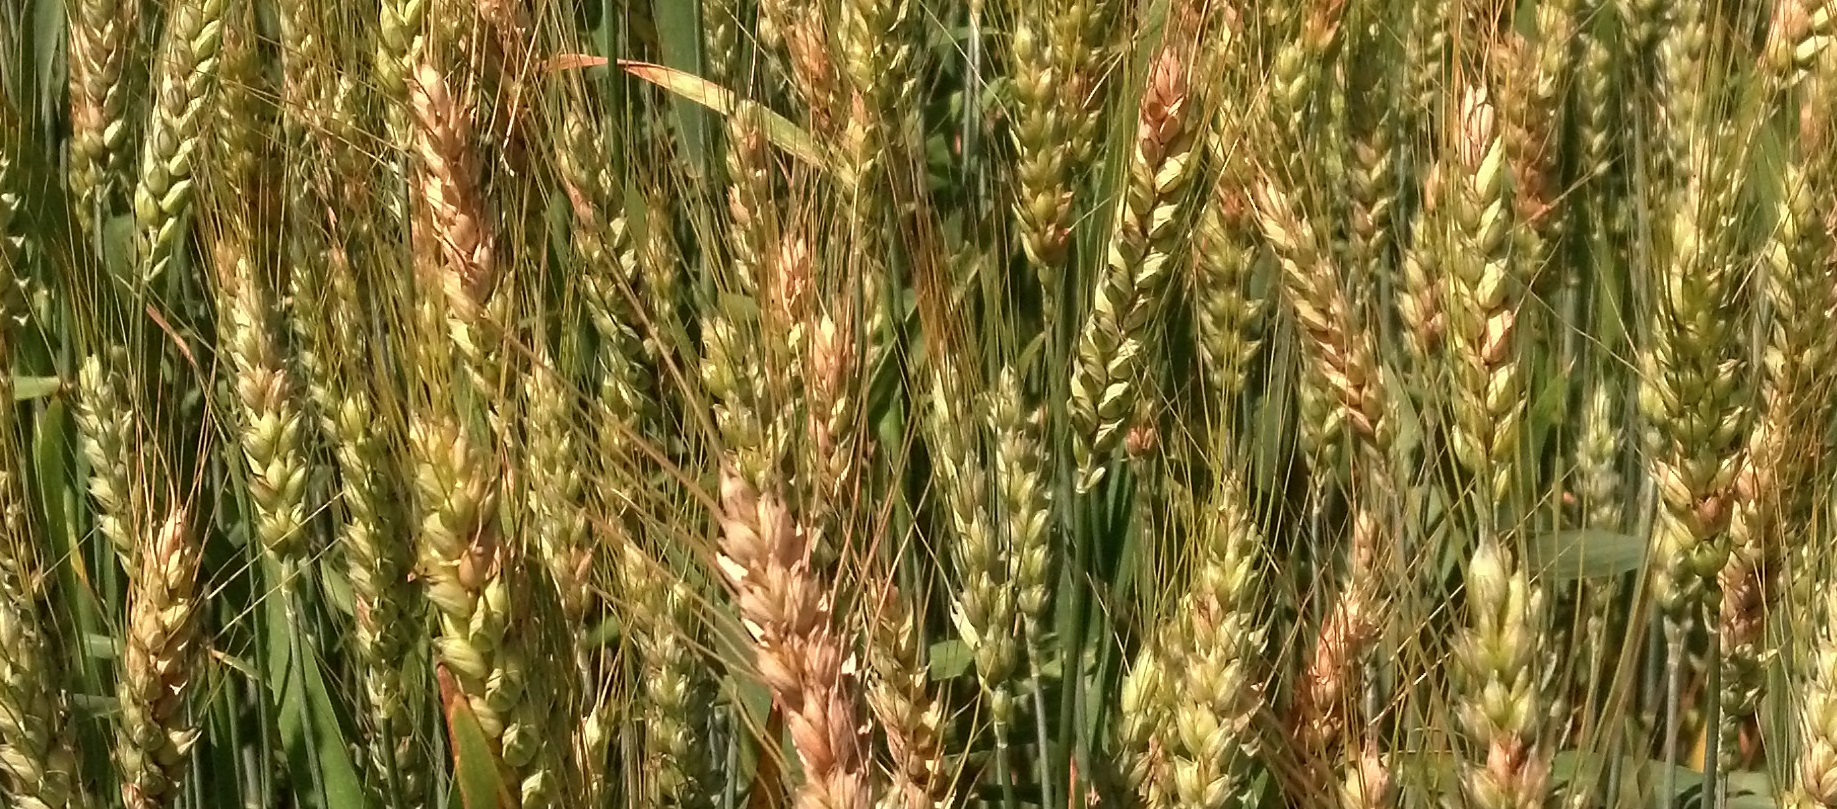 Wheat Head Blight – Thoughts on Managing DON